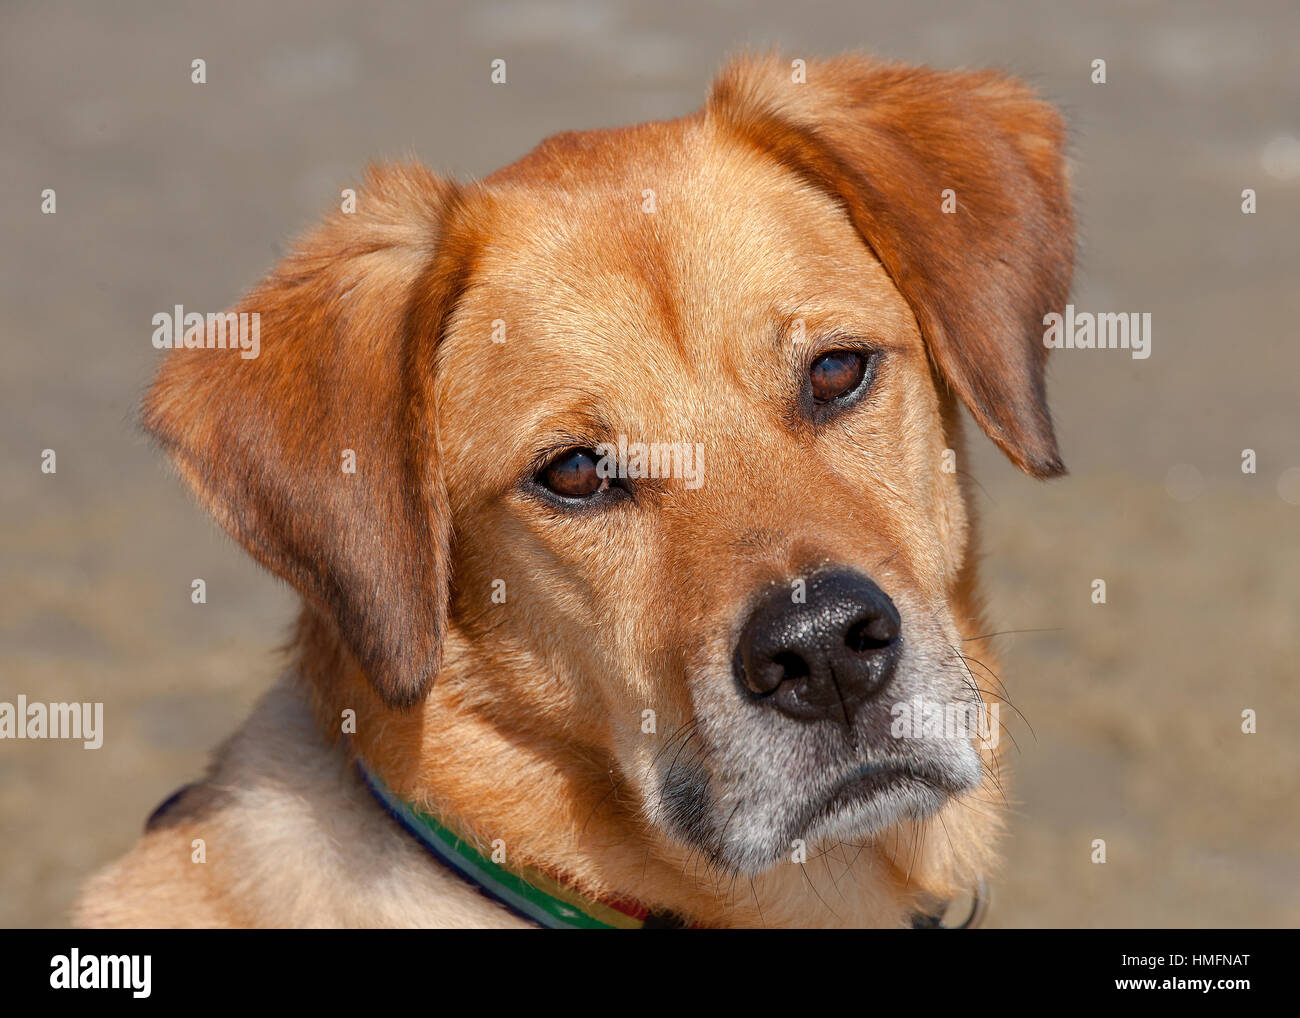 Handsome mixed breed red brown dog with soulful eyes looking at camera with headtilt neutral background close up - Stock Image